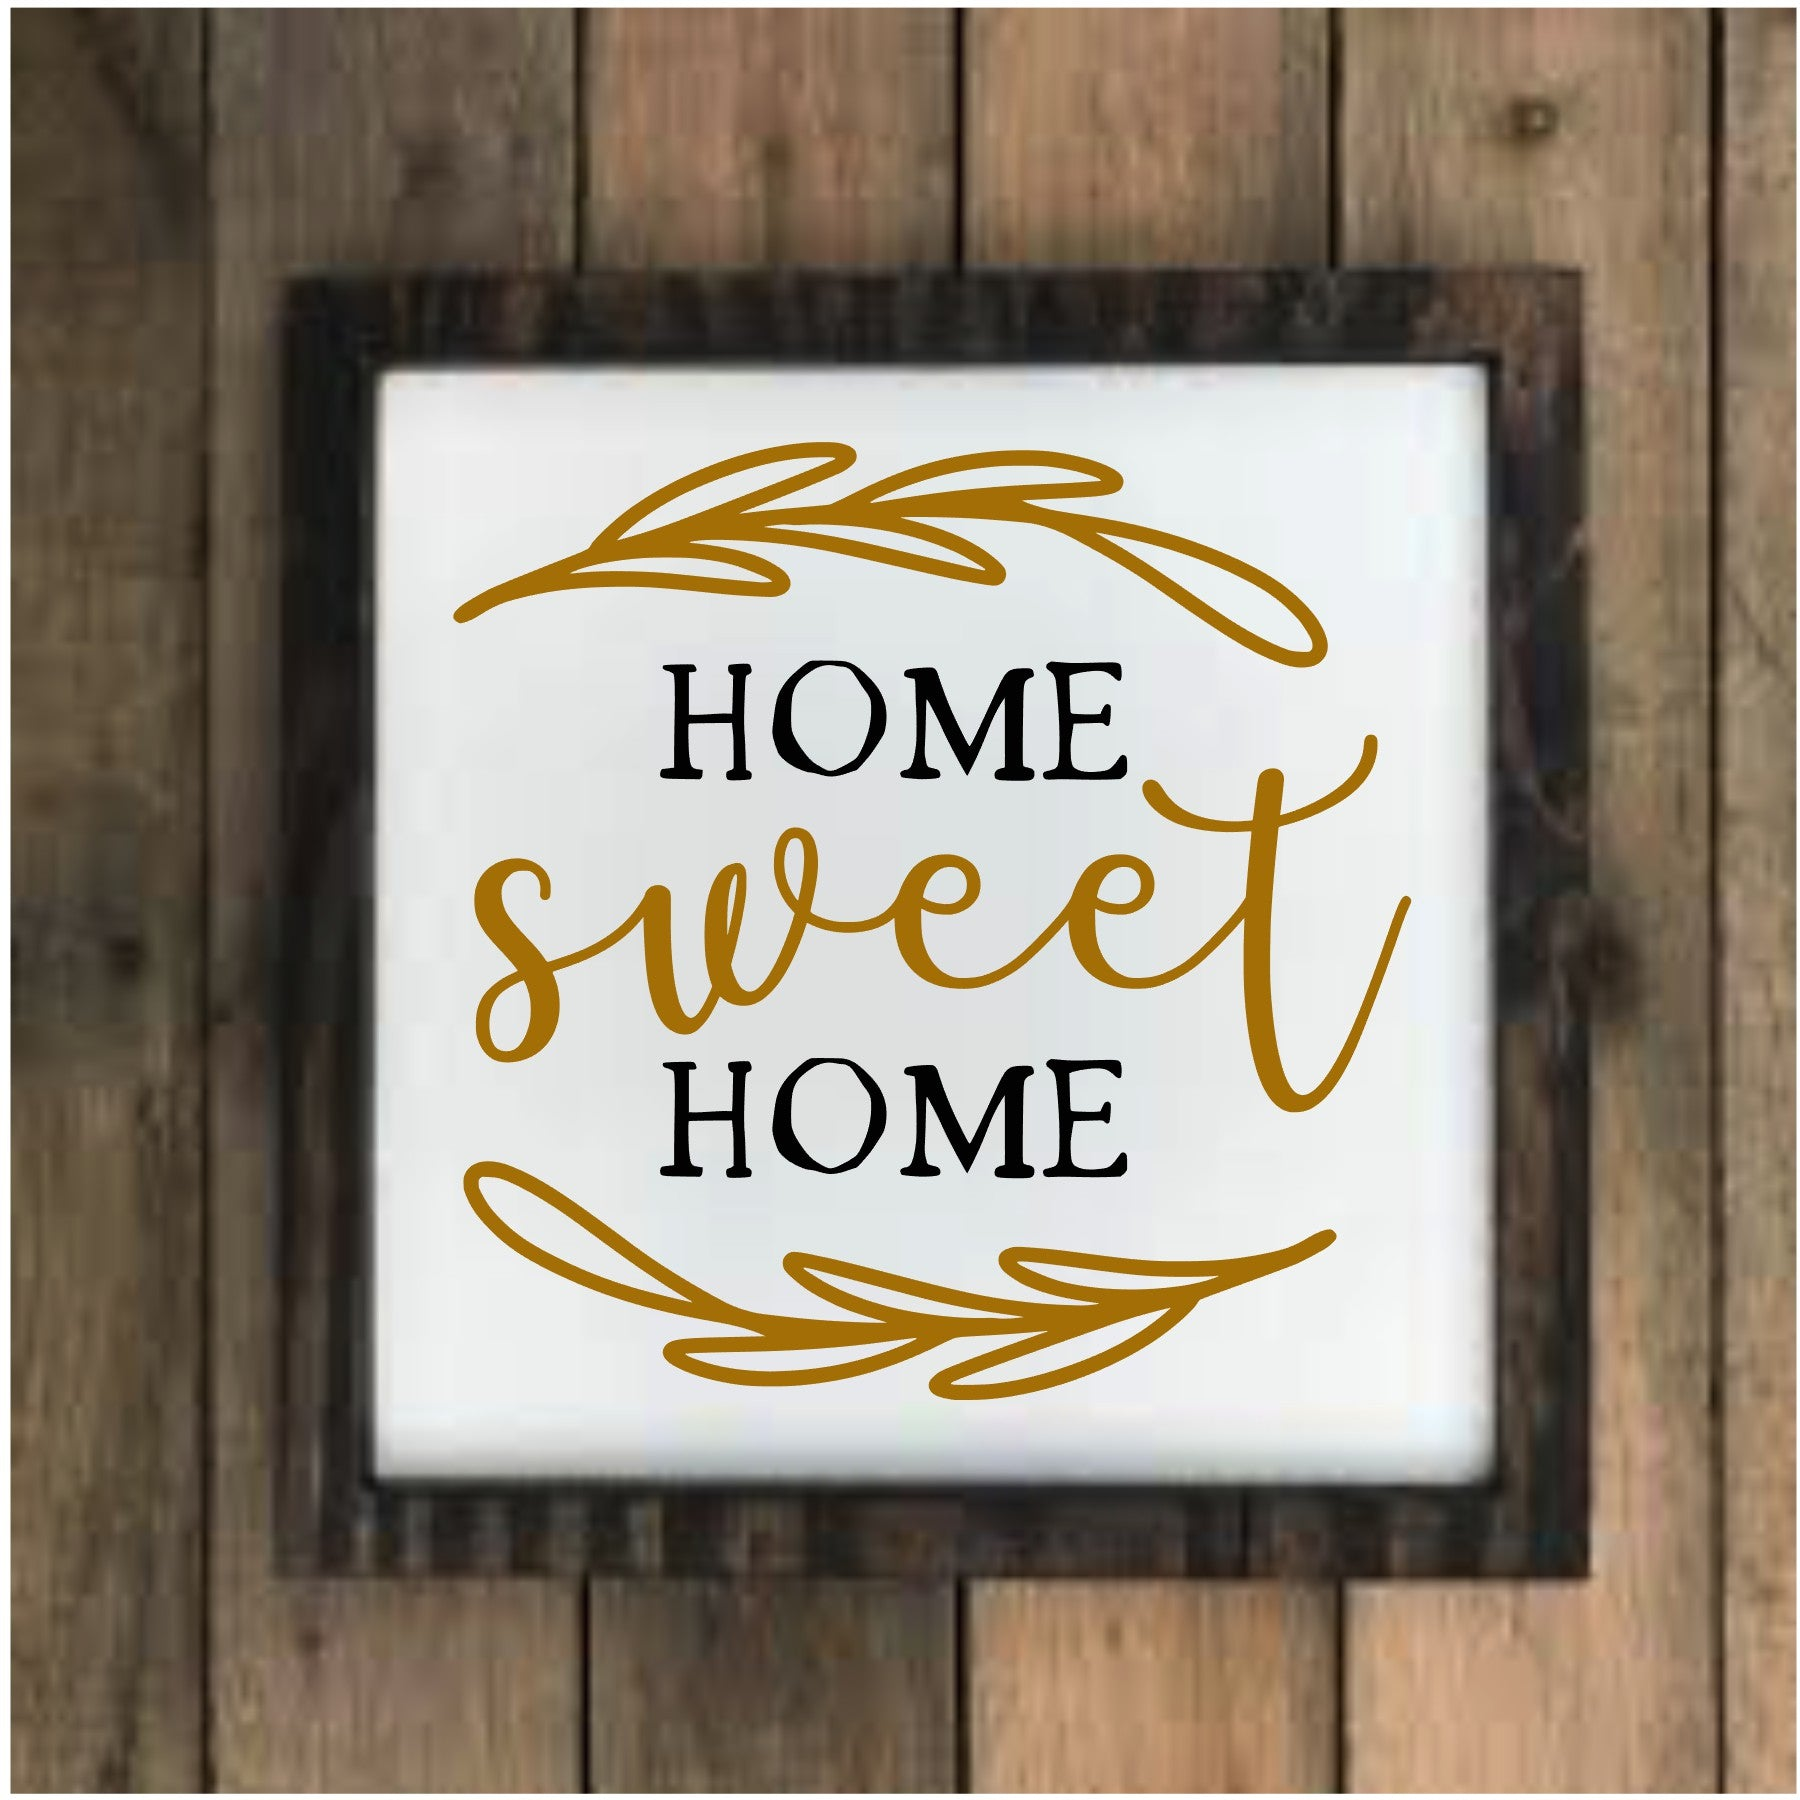 Home Sweet Home SVG - JPIBlanks.com